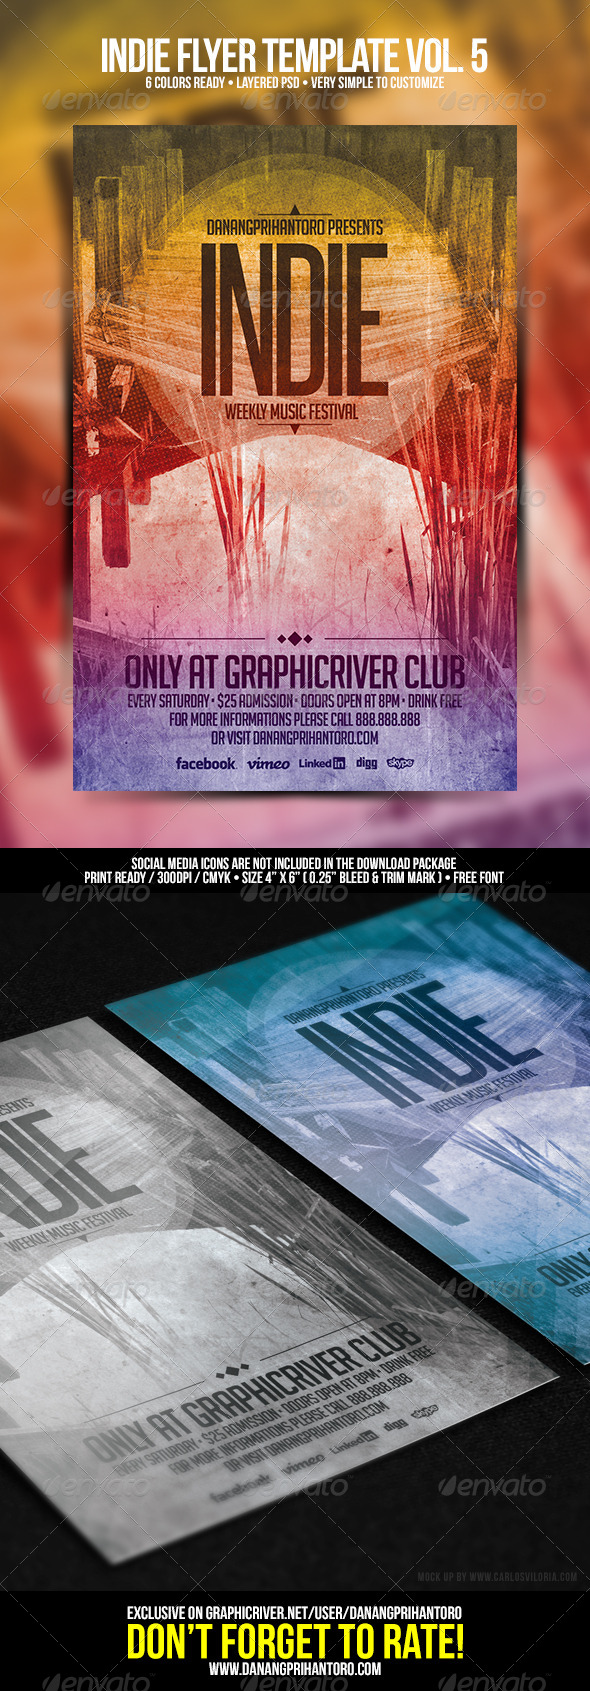 GraphicRiver Indie Flyer Template Vol 5 6685434